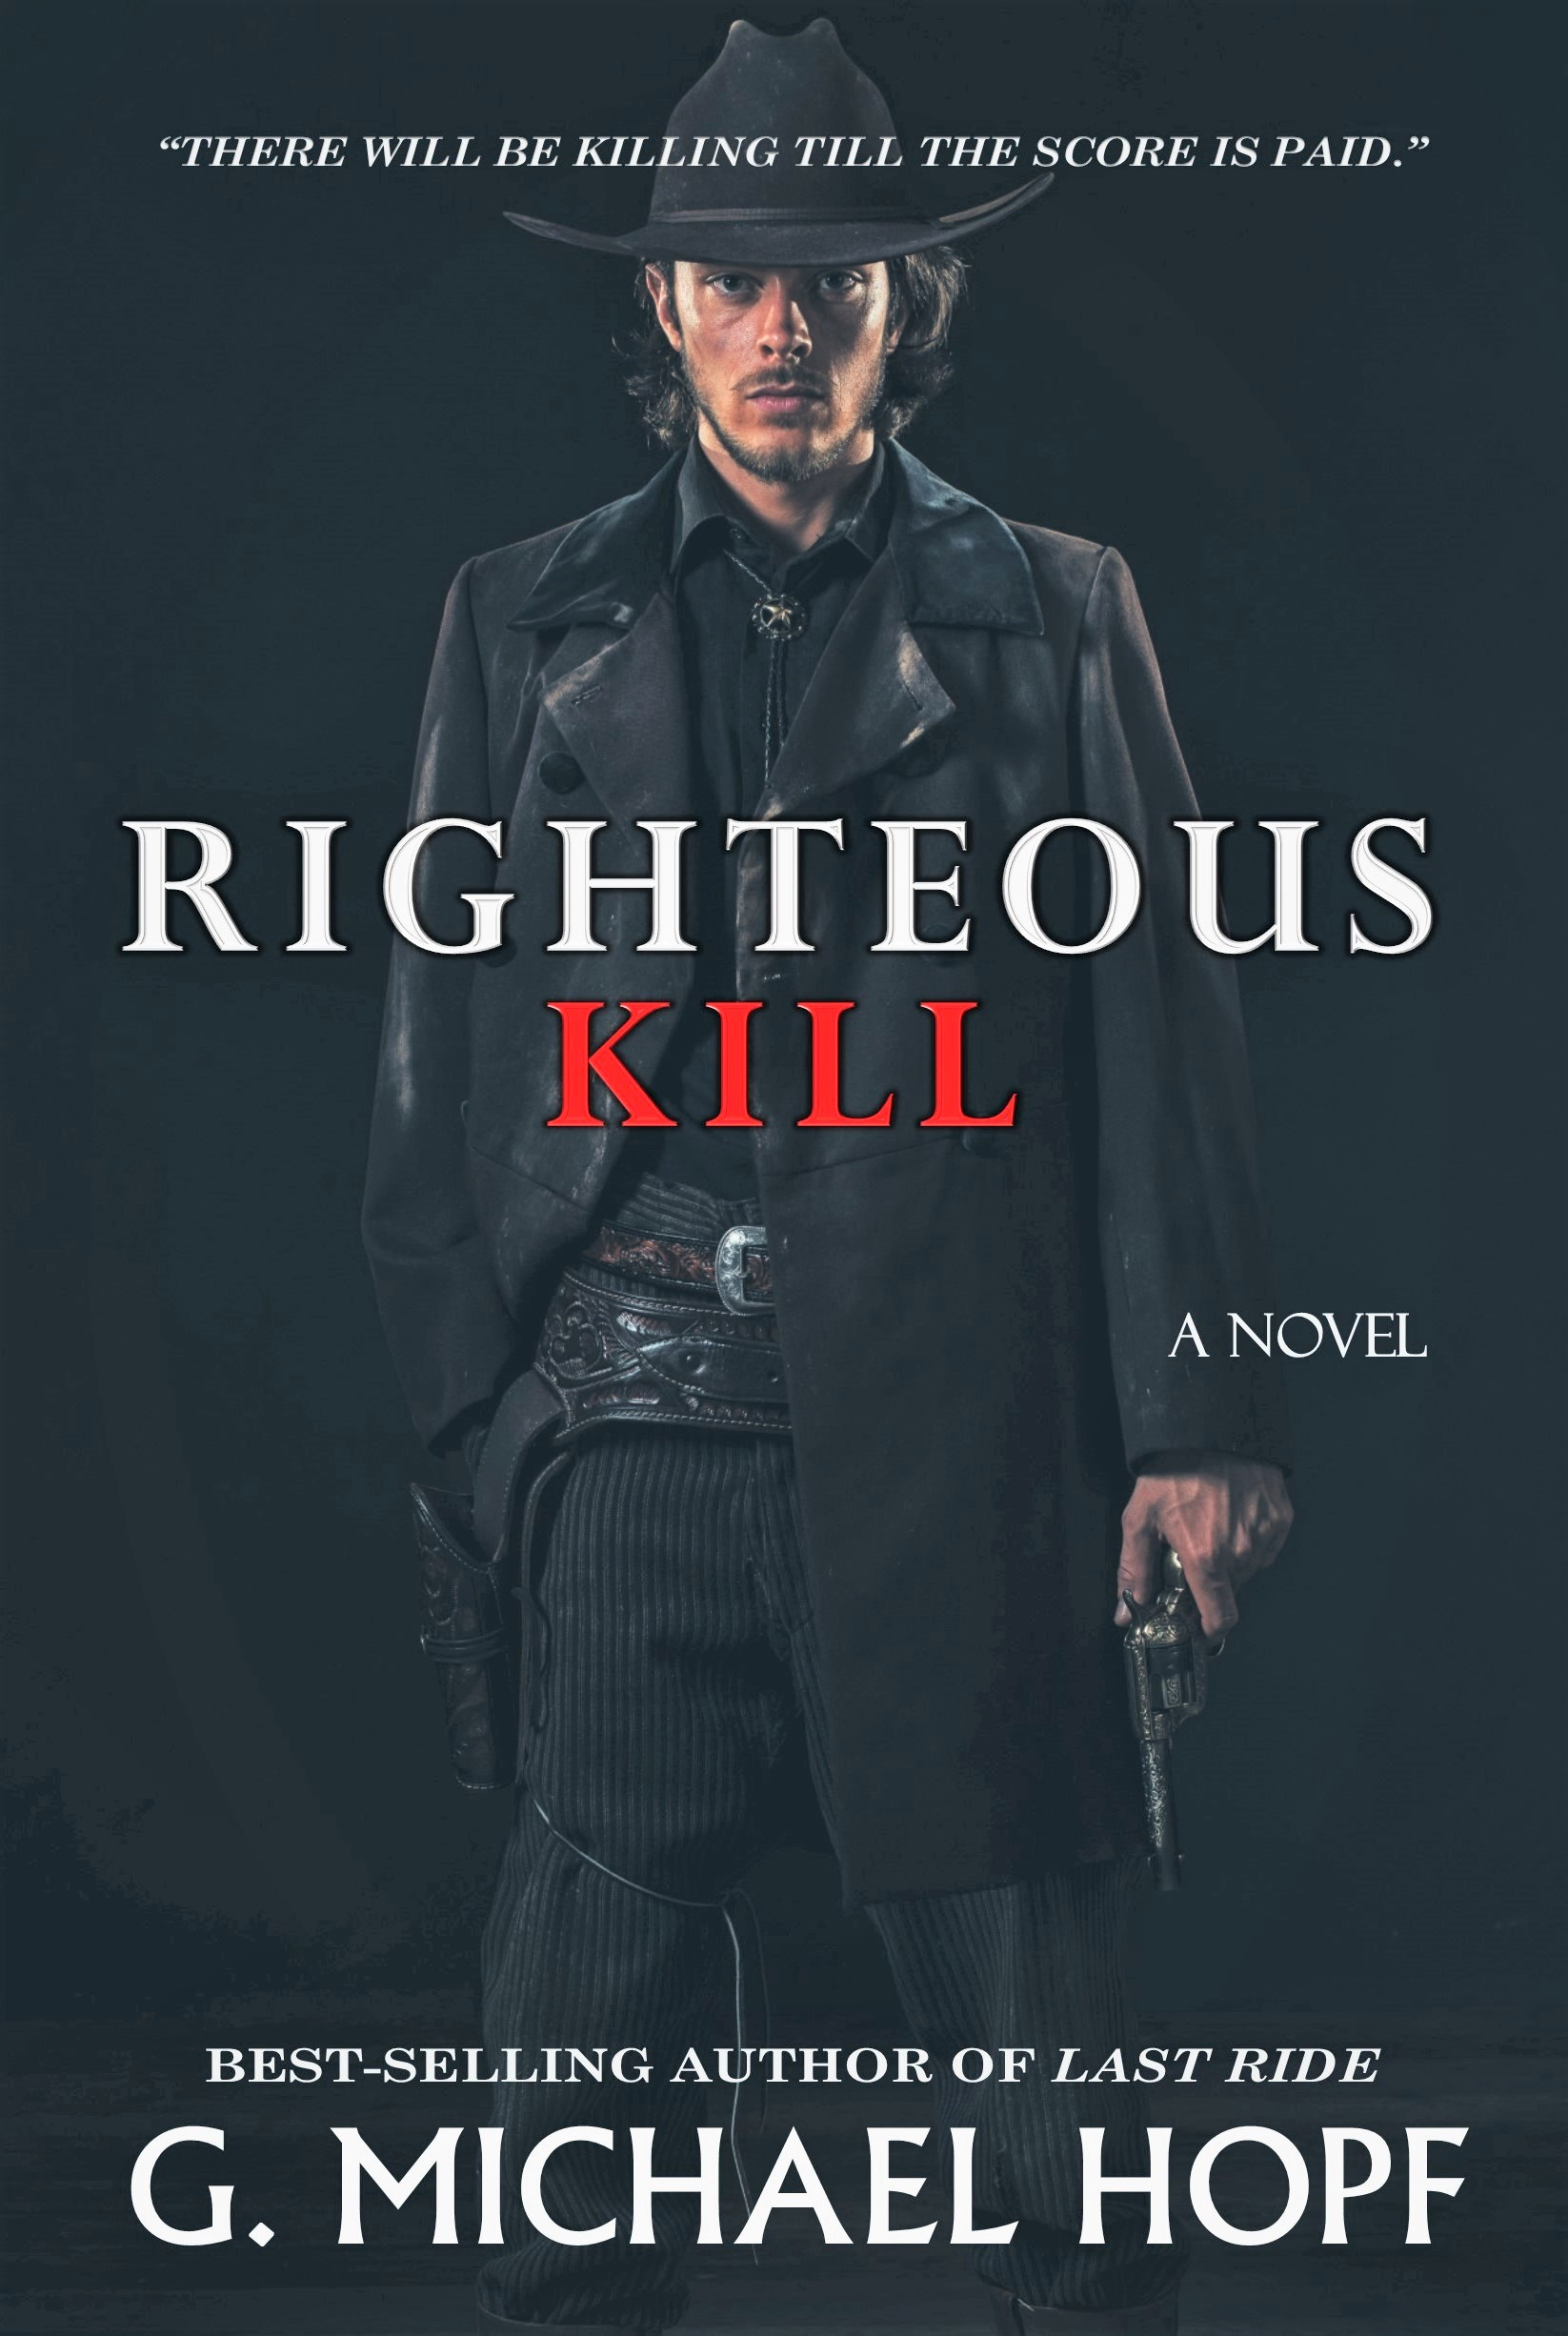 RIGHTEOUS KILL COVER CONCEPT